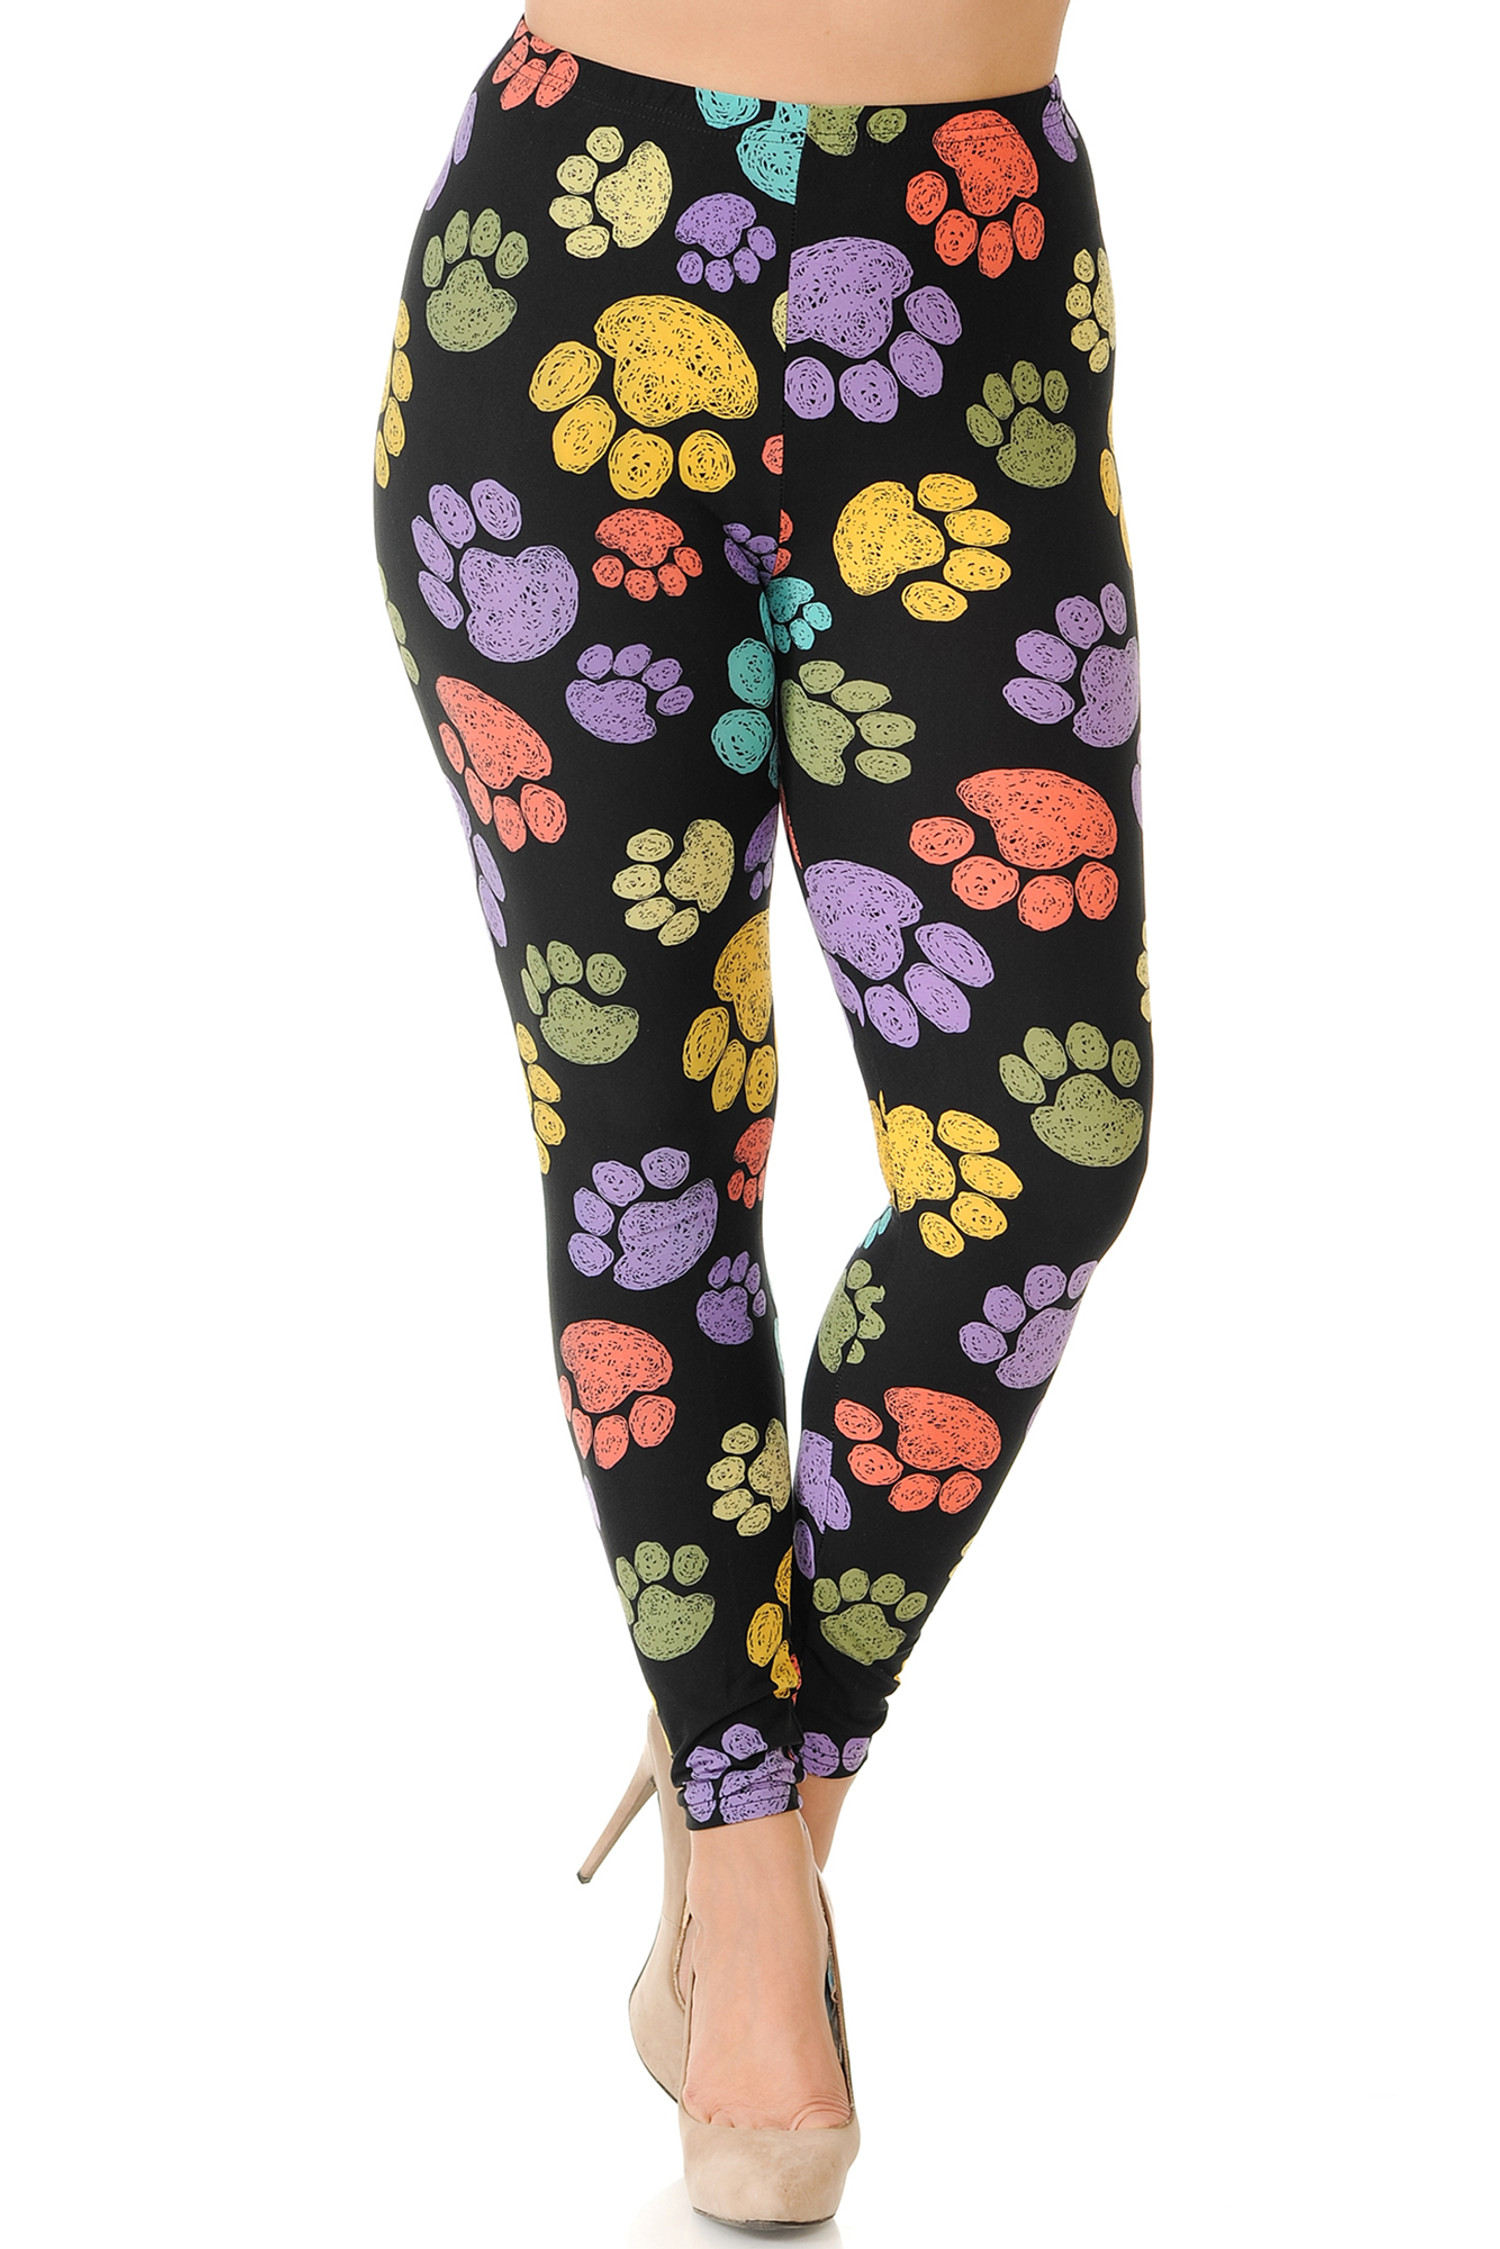 Front side image of Creamy Soft Colorful Paw Print Plus Size Leggings - USA Fashion™ with a flattering fit and luxurious comfort.